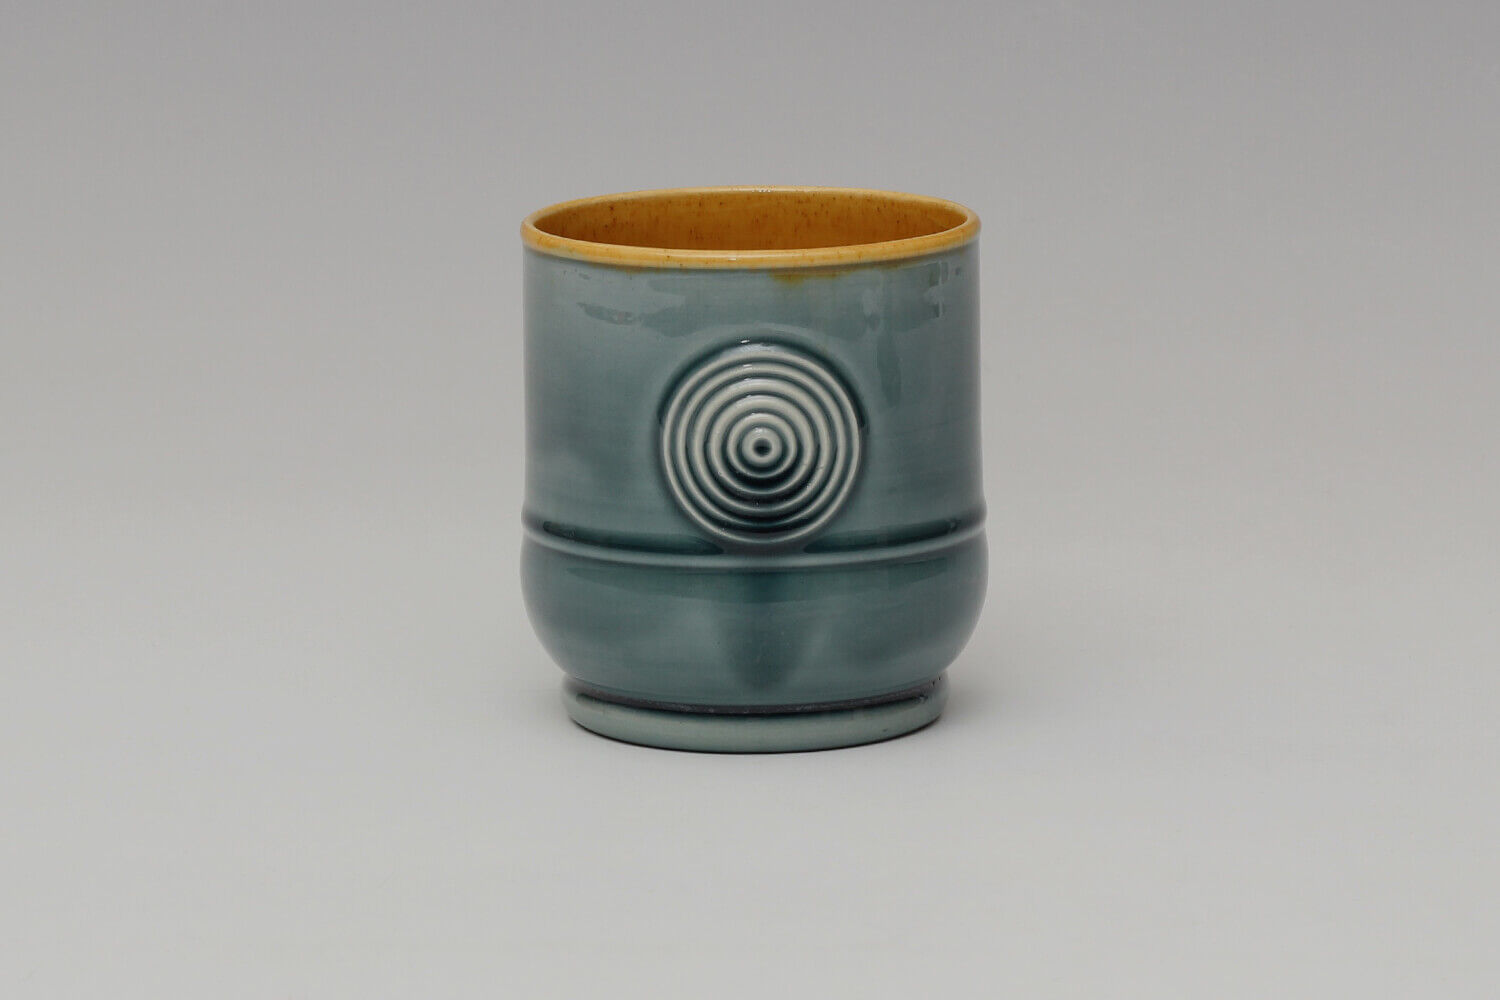 Walter keeler Ceramic Earthenware Tea Bowl 10